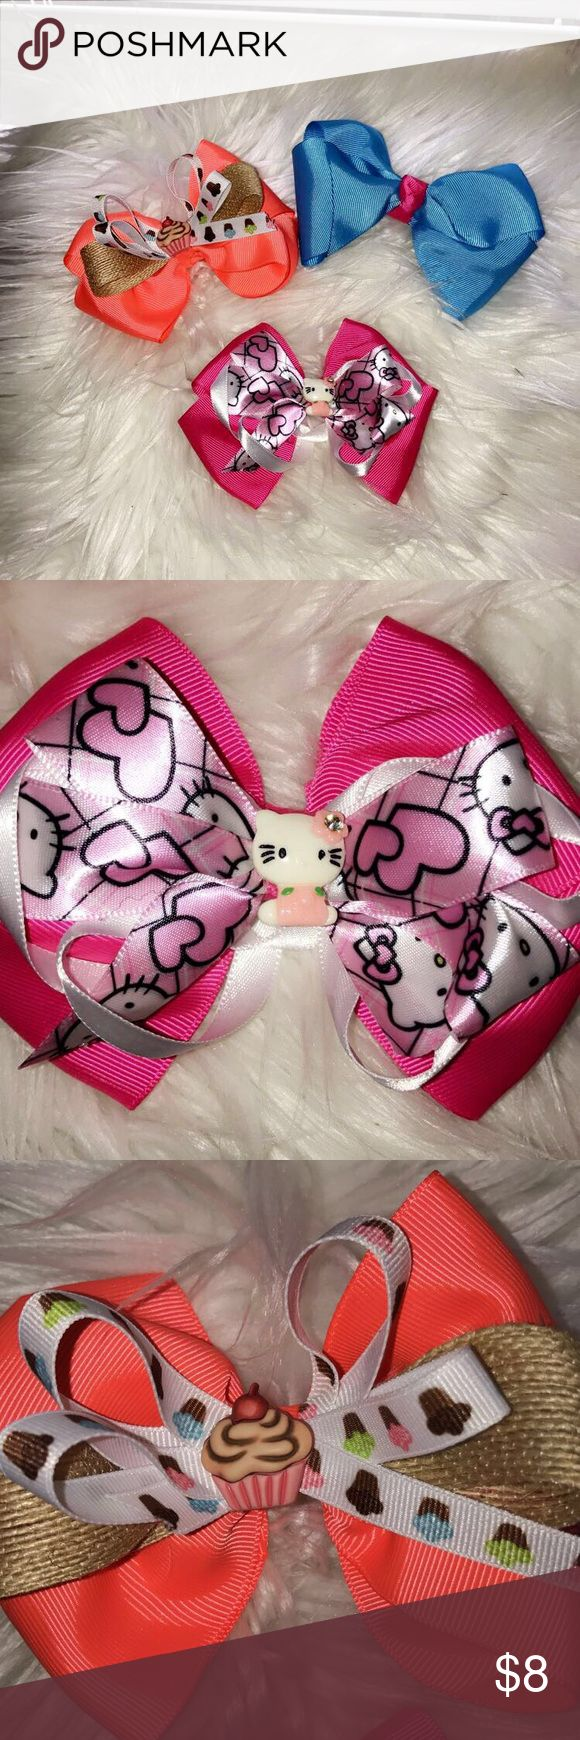 Grosgrain 2.5 ribbon 🎀 homemade bows Grosgrain 2.5 ribbon with embellished set of three for $8 Other